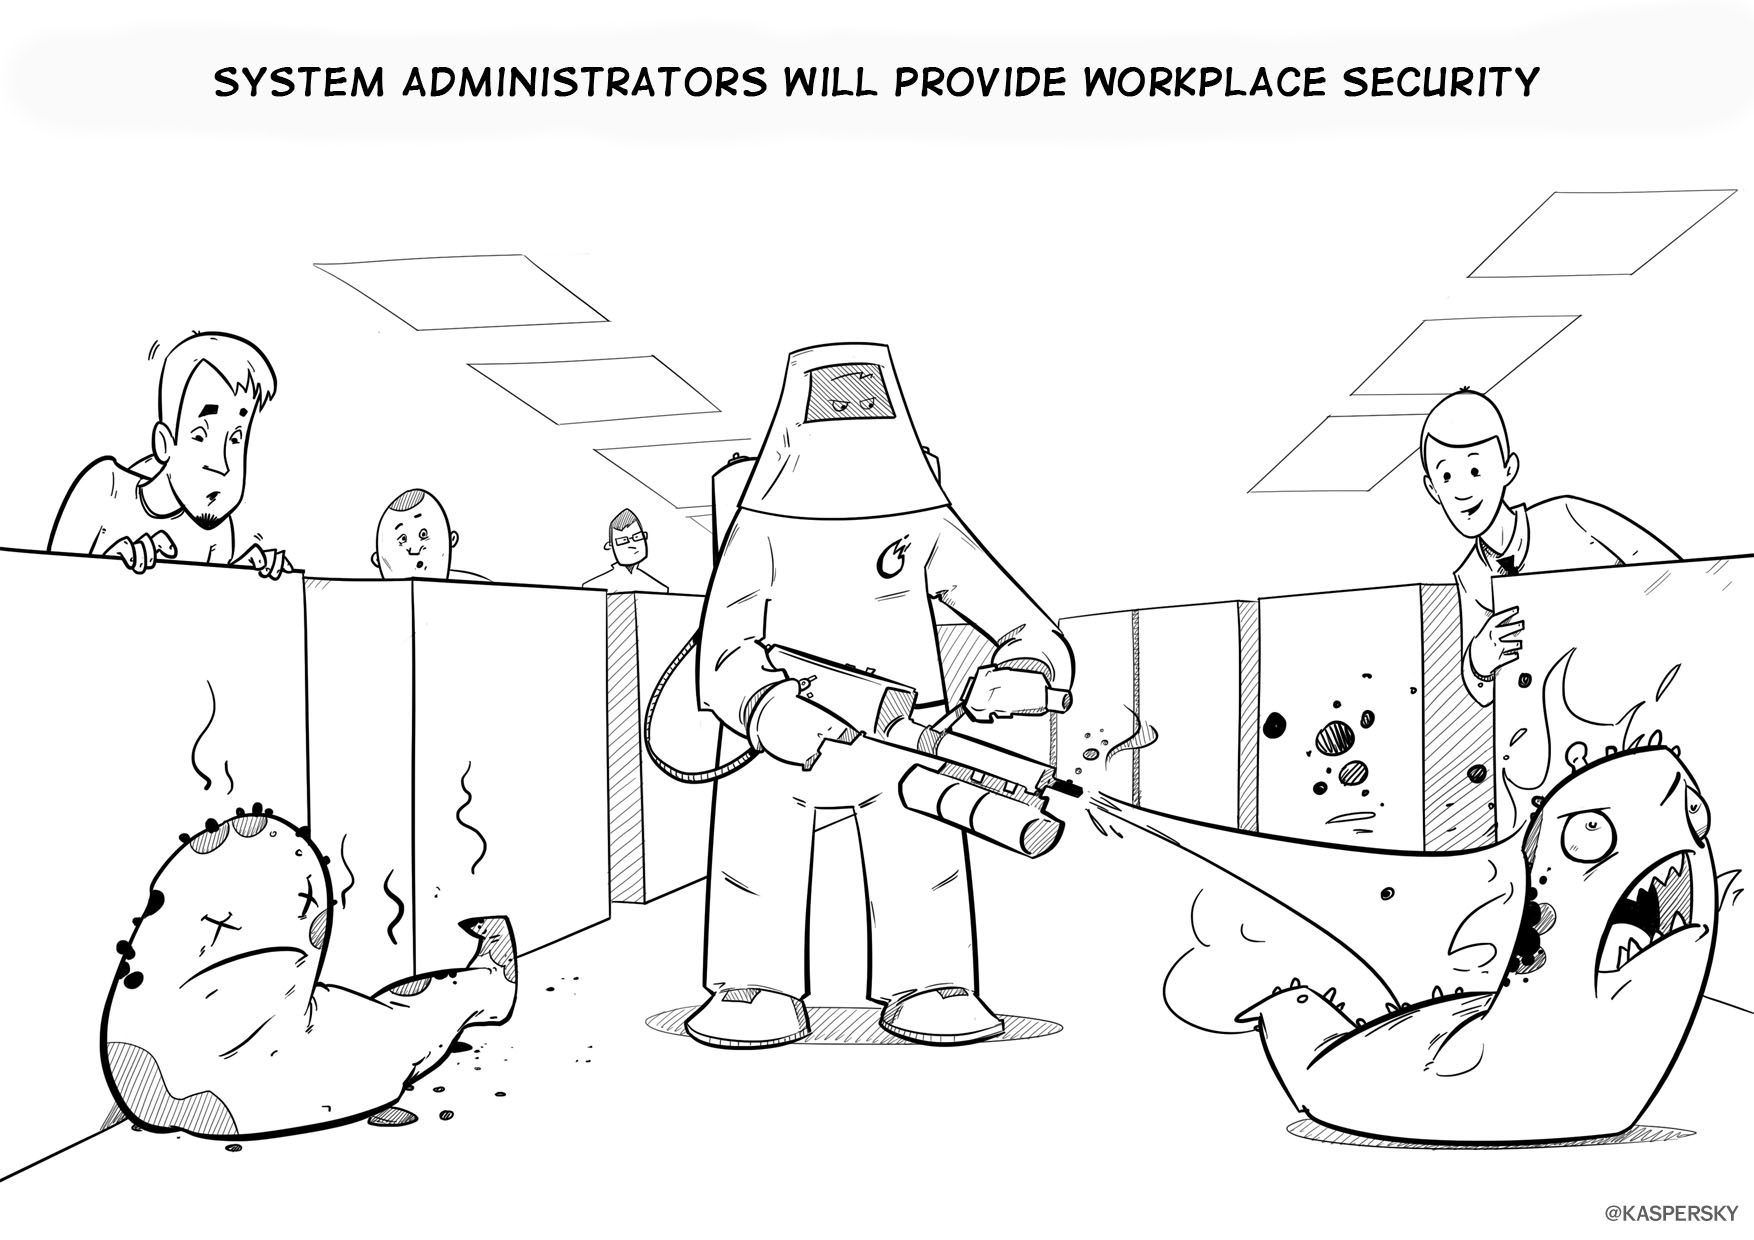 the yberworld survival guide workplace security kaspersky lab SharePoint 2013 Lab Setup the yberworld survival guide workplace security kaspersky lab official blog